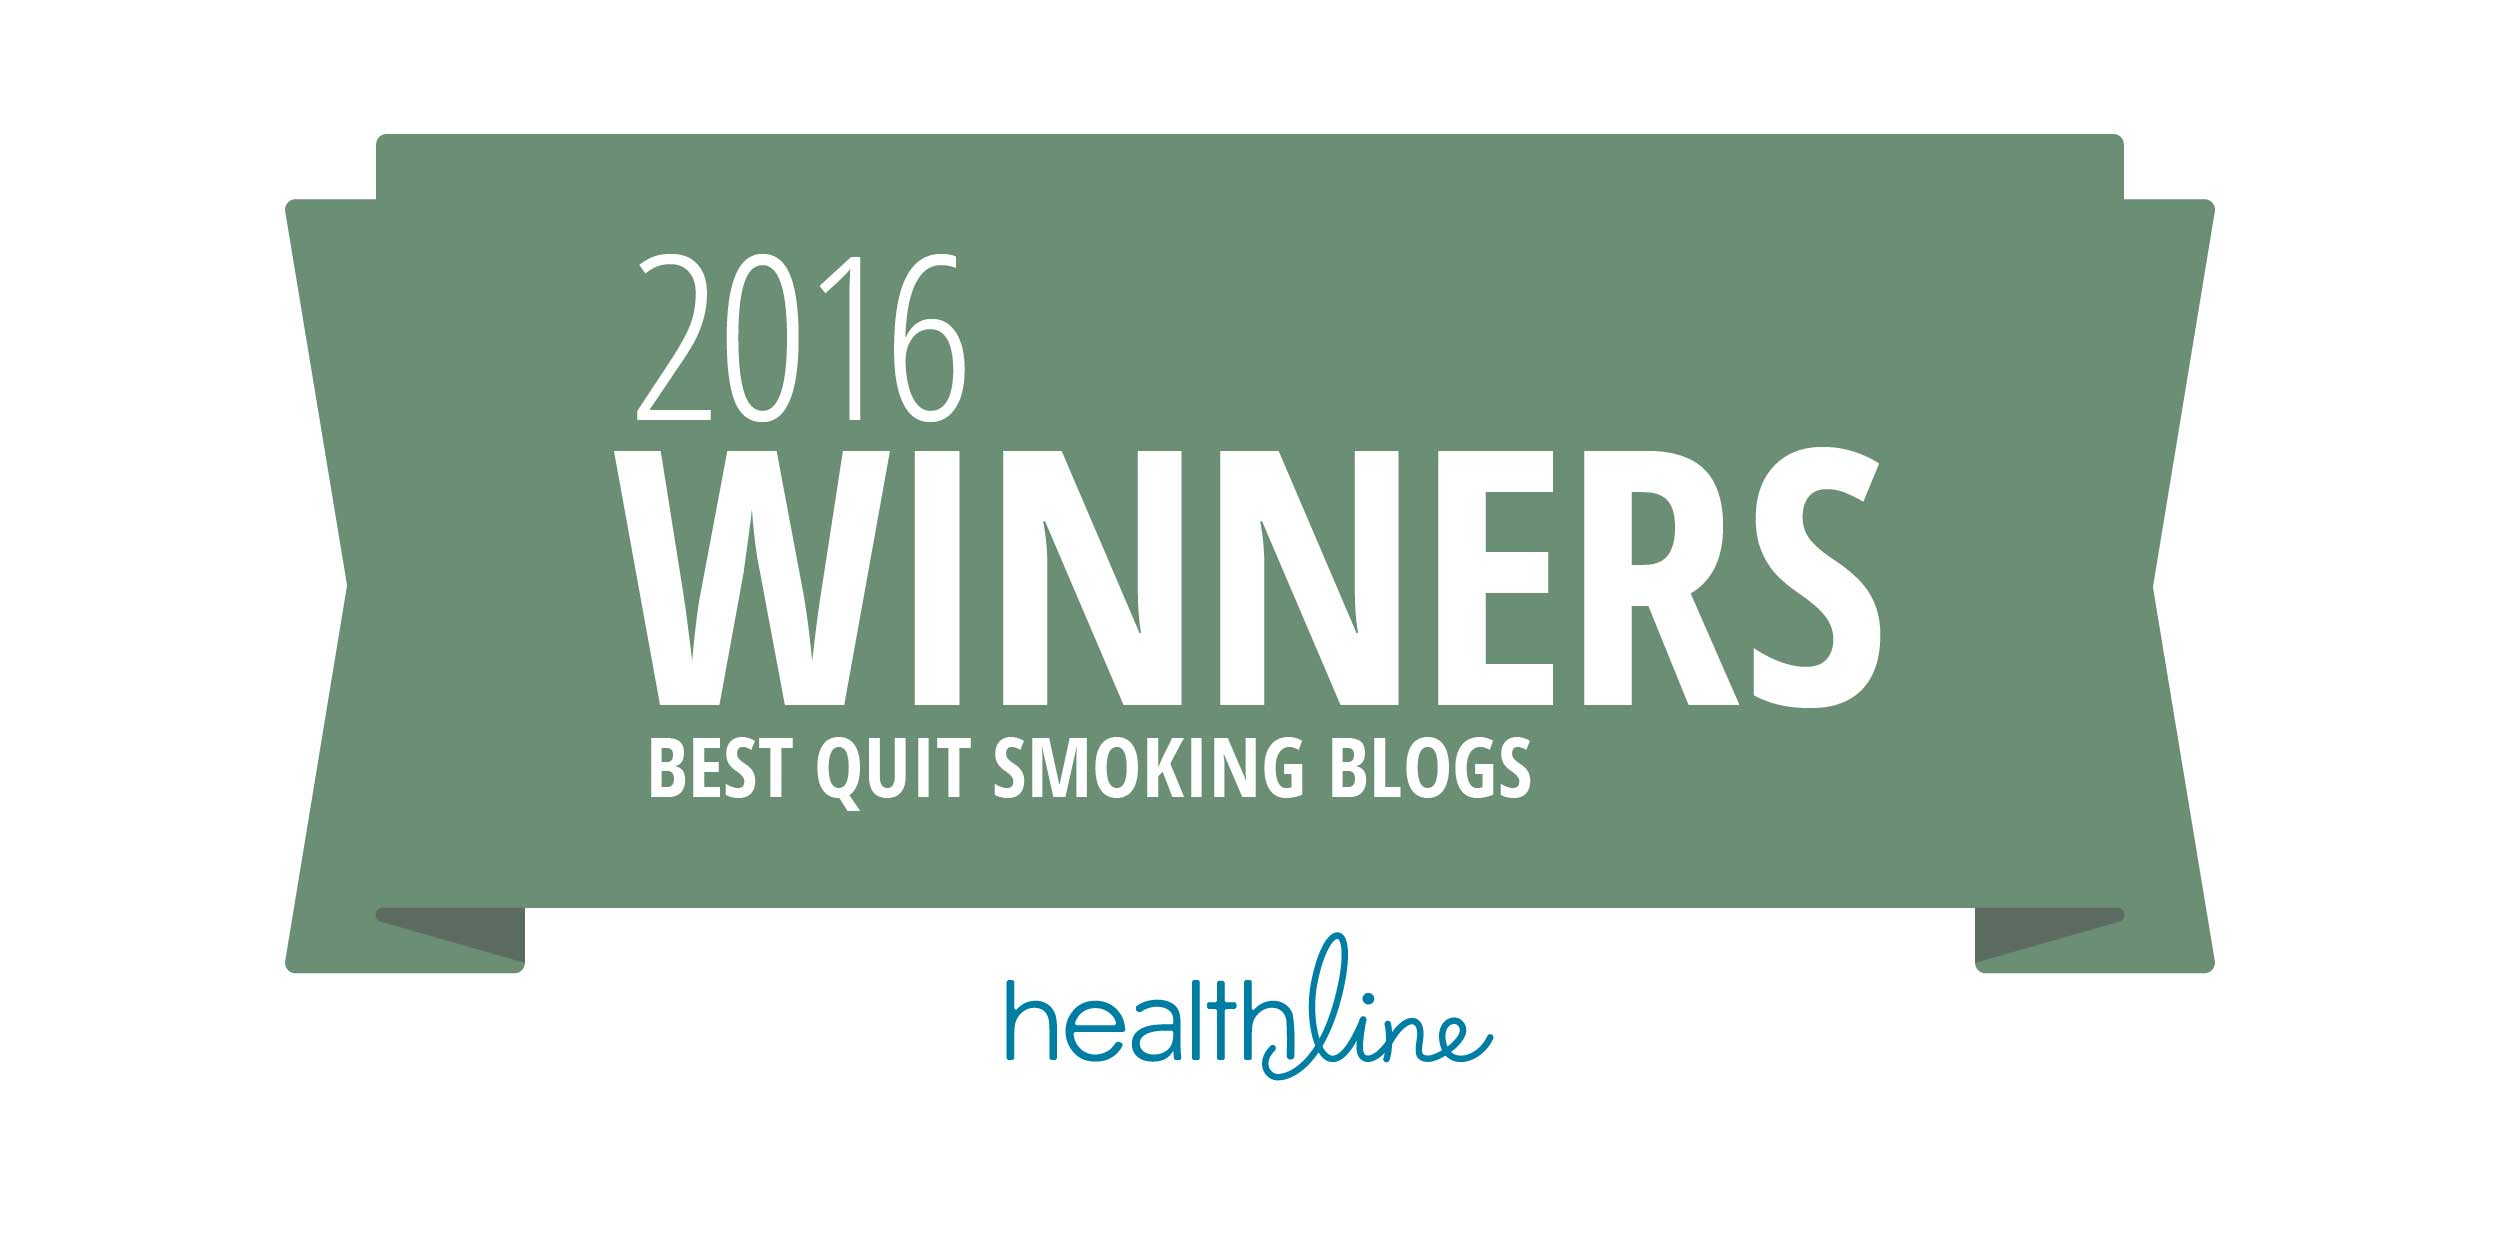 Best Quit Smoking Blogs of the Year